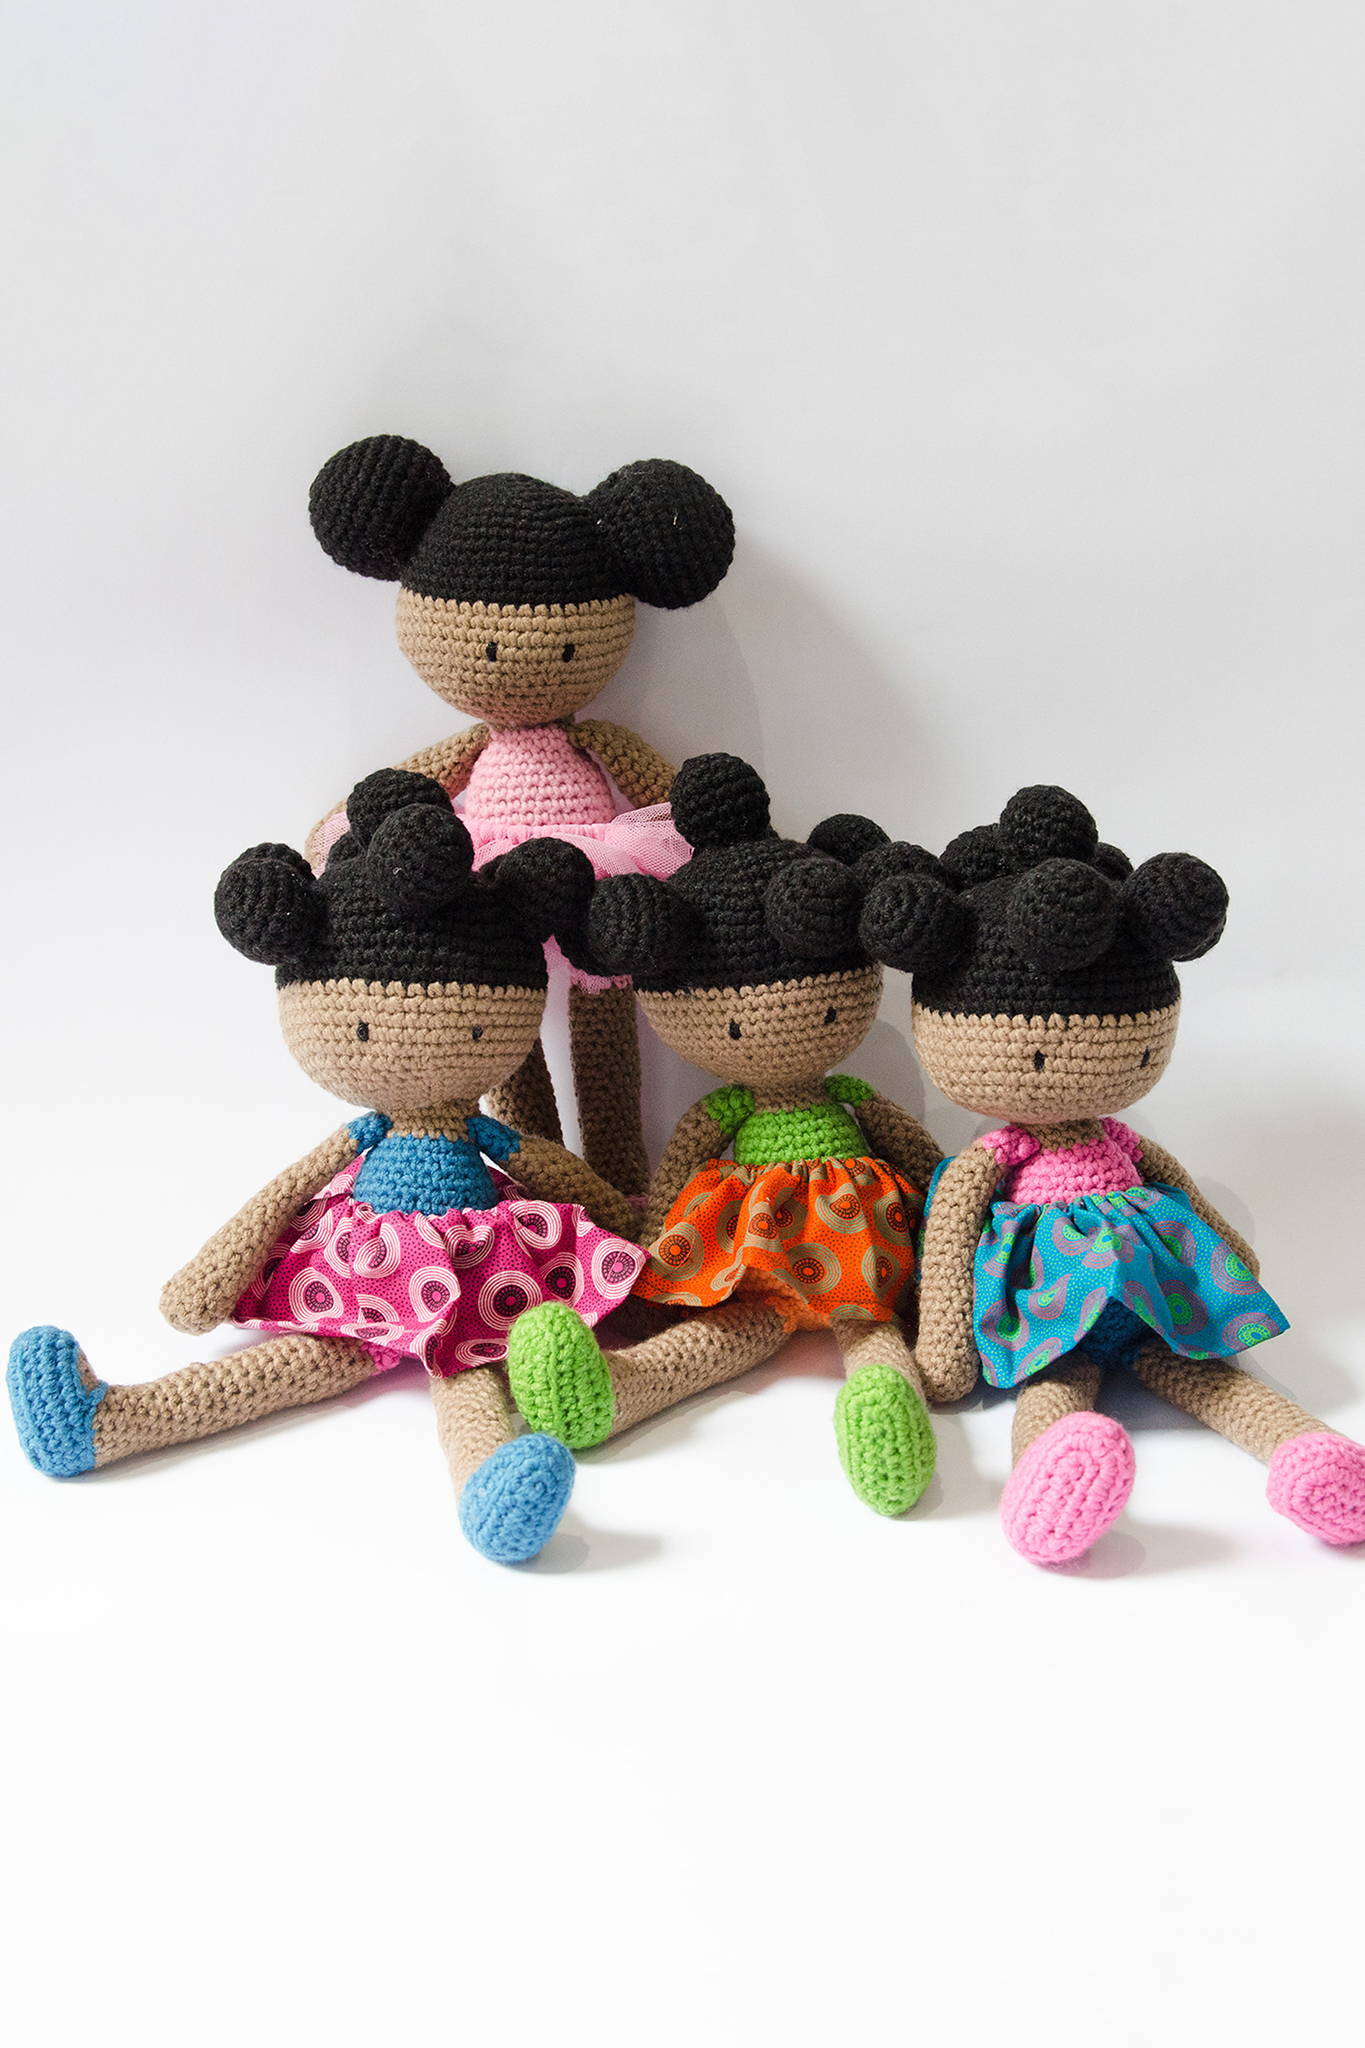 WINNIE & FRIENDS DOLLS Crocheted dolls. Your child's new best friend. 54kibo exclusive. $55